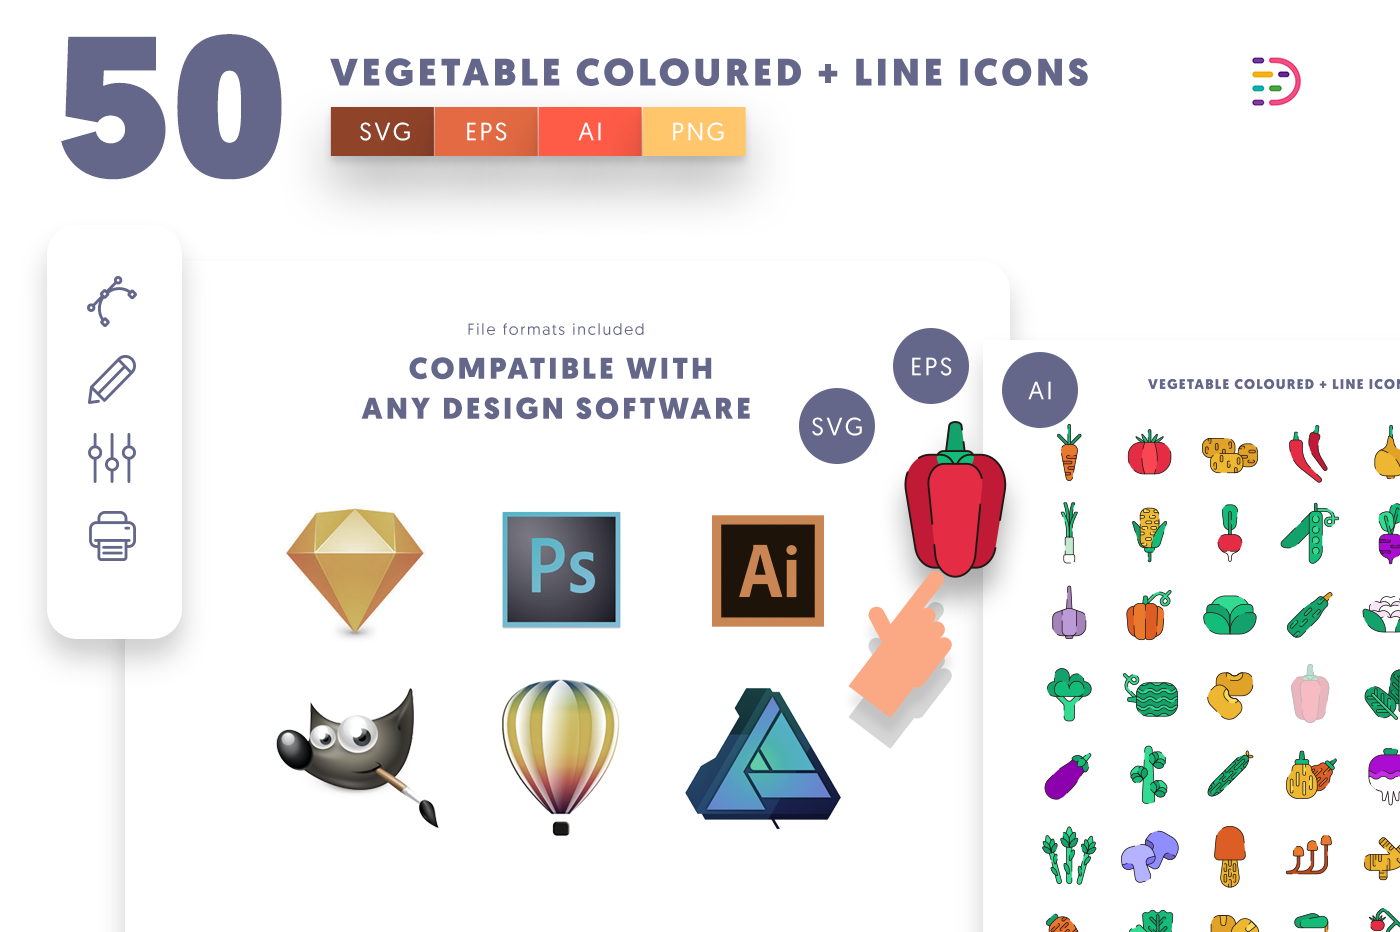 full vector 50 Vegetable Coloured + Lines Icons EPS, SVG, PNG